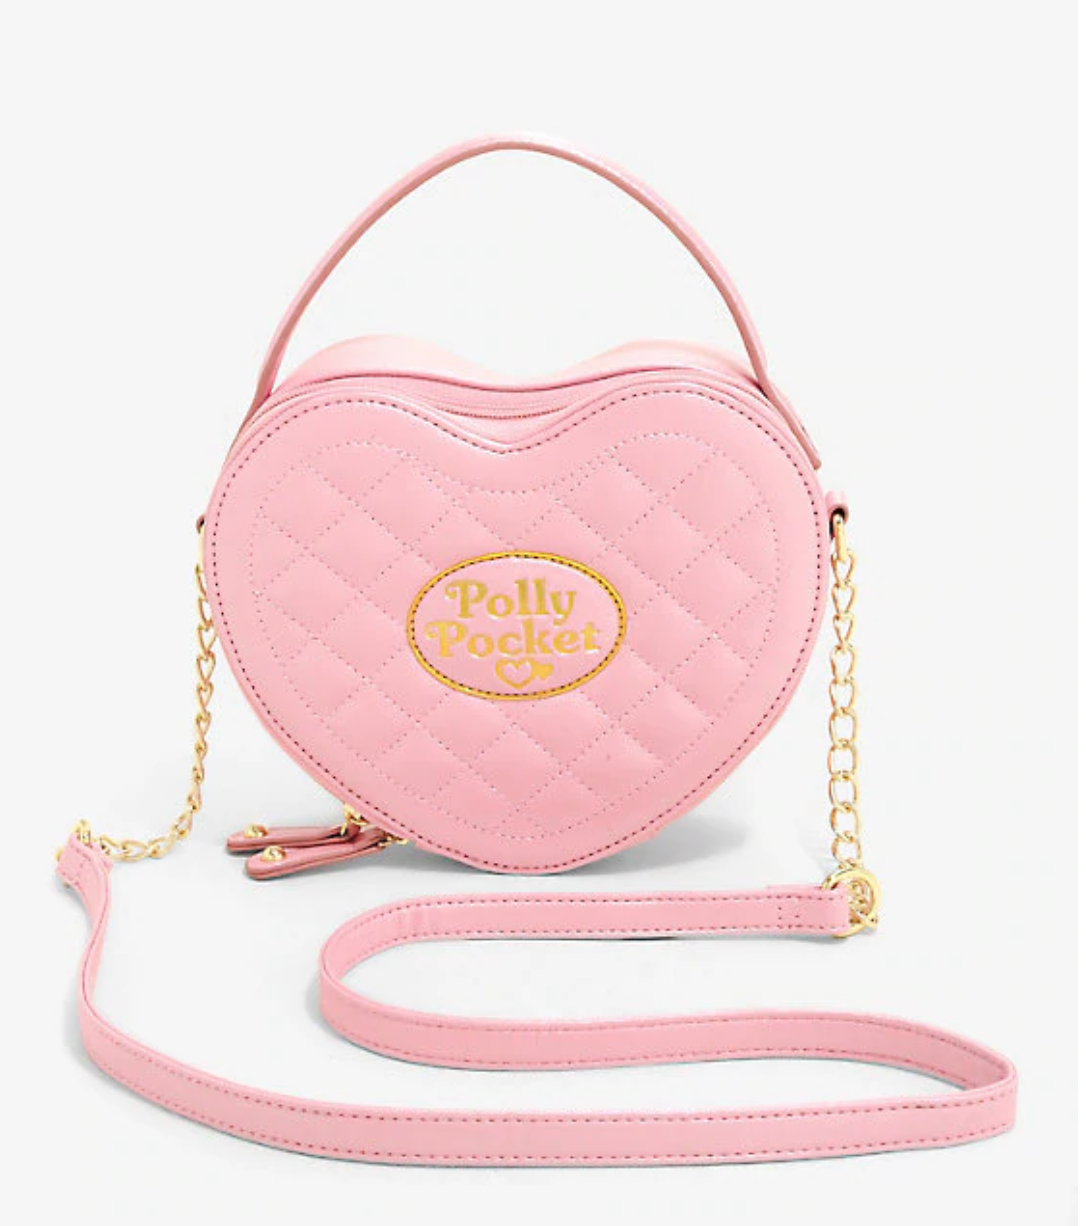 Polly Pocket Quilted Heart Crosssbody